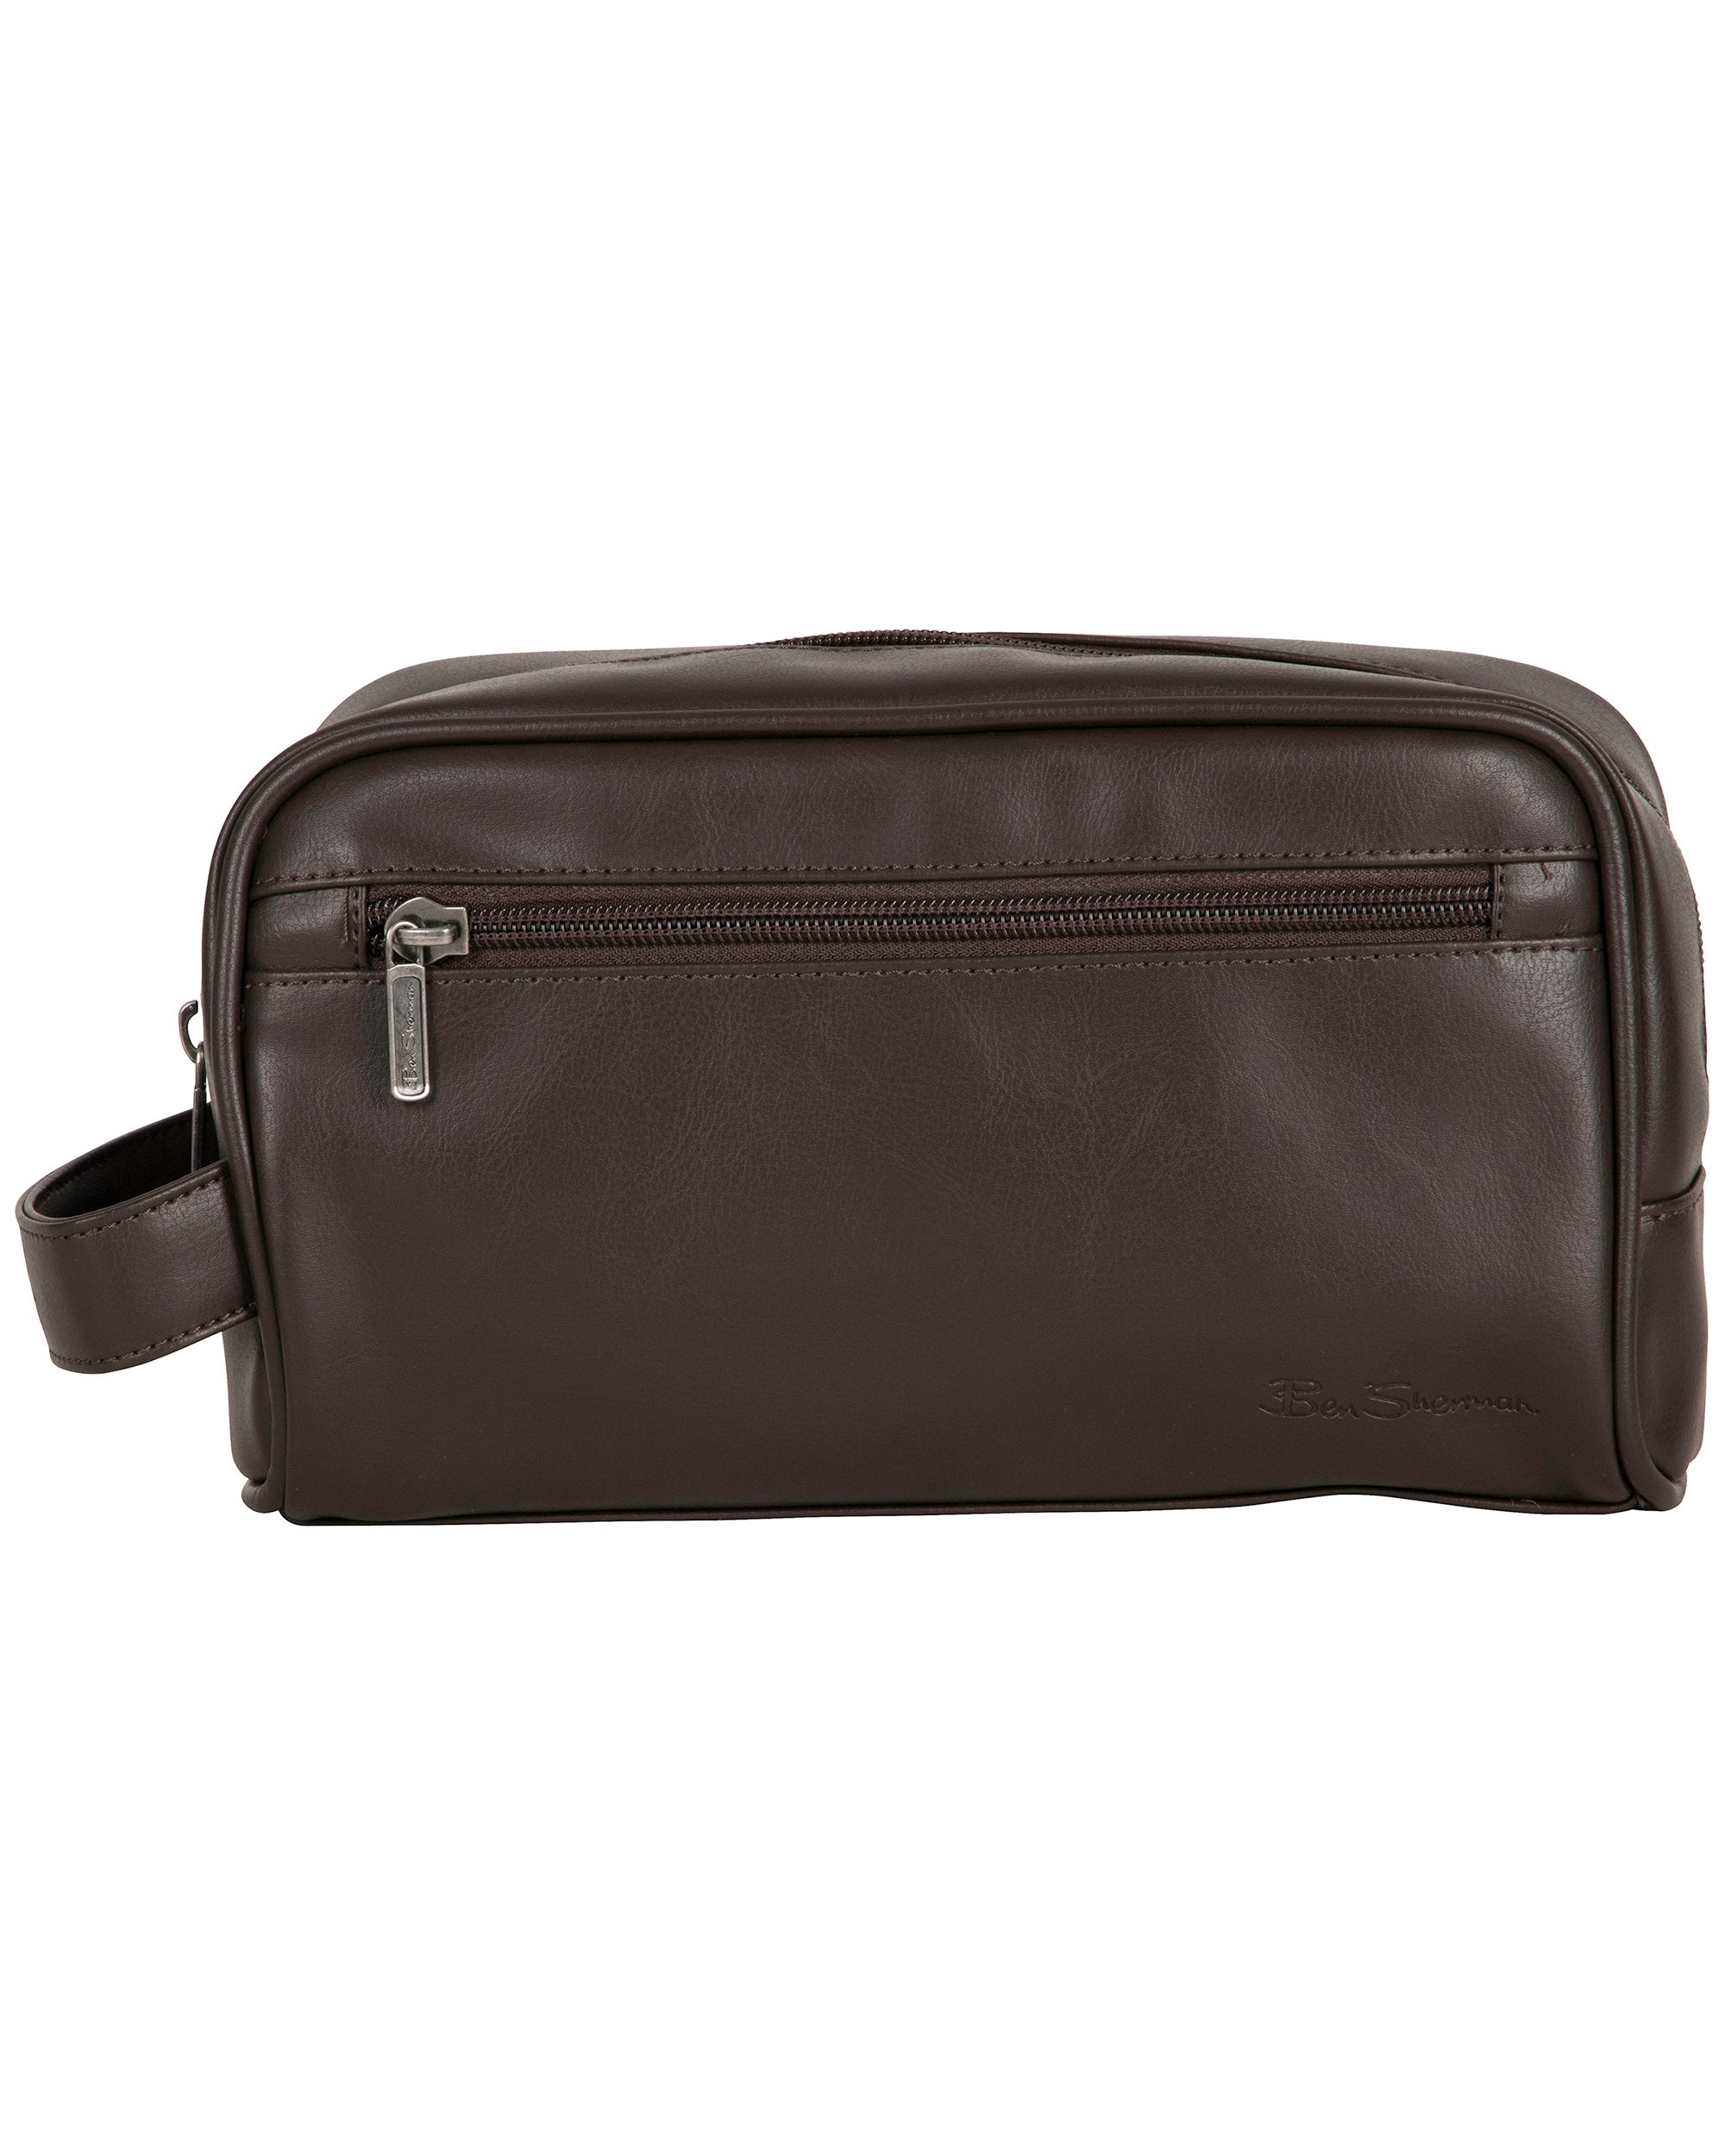 Mayfair Single Compartment Travel Dopp Kit - Brown